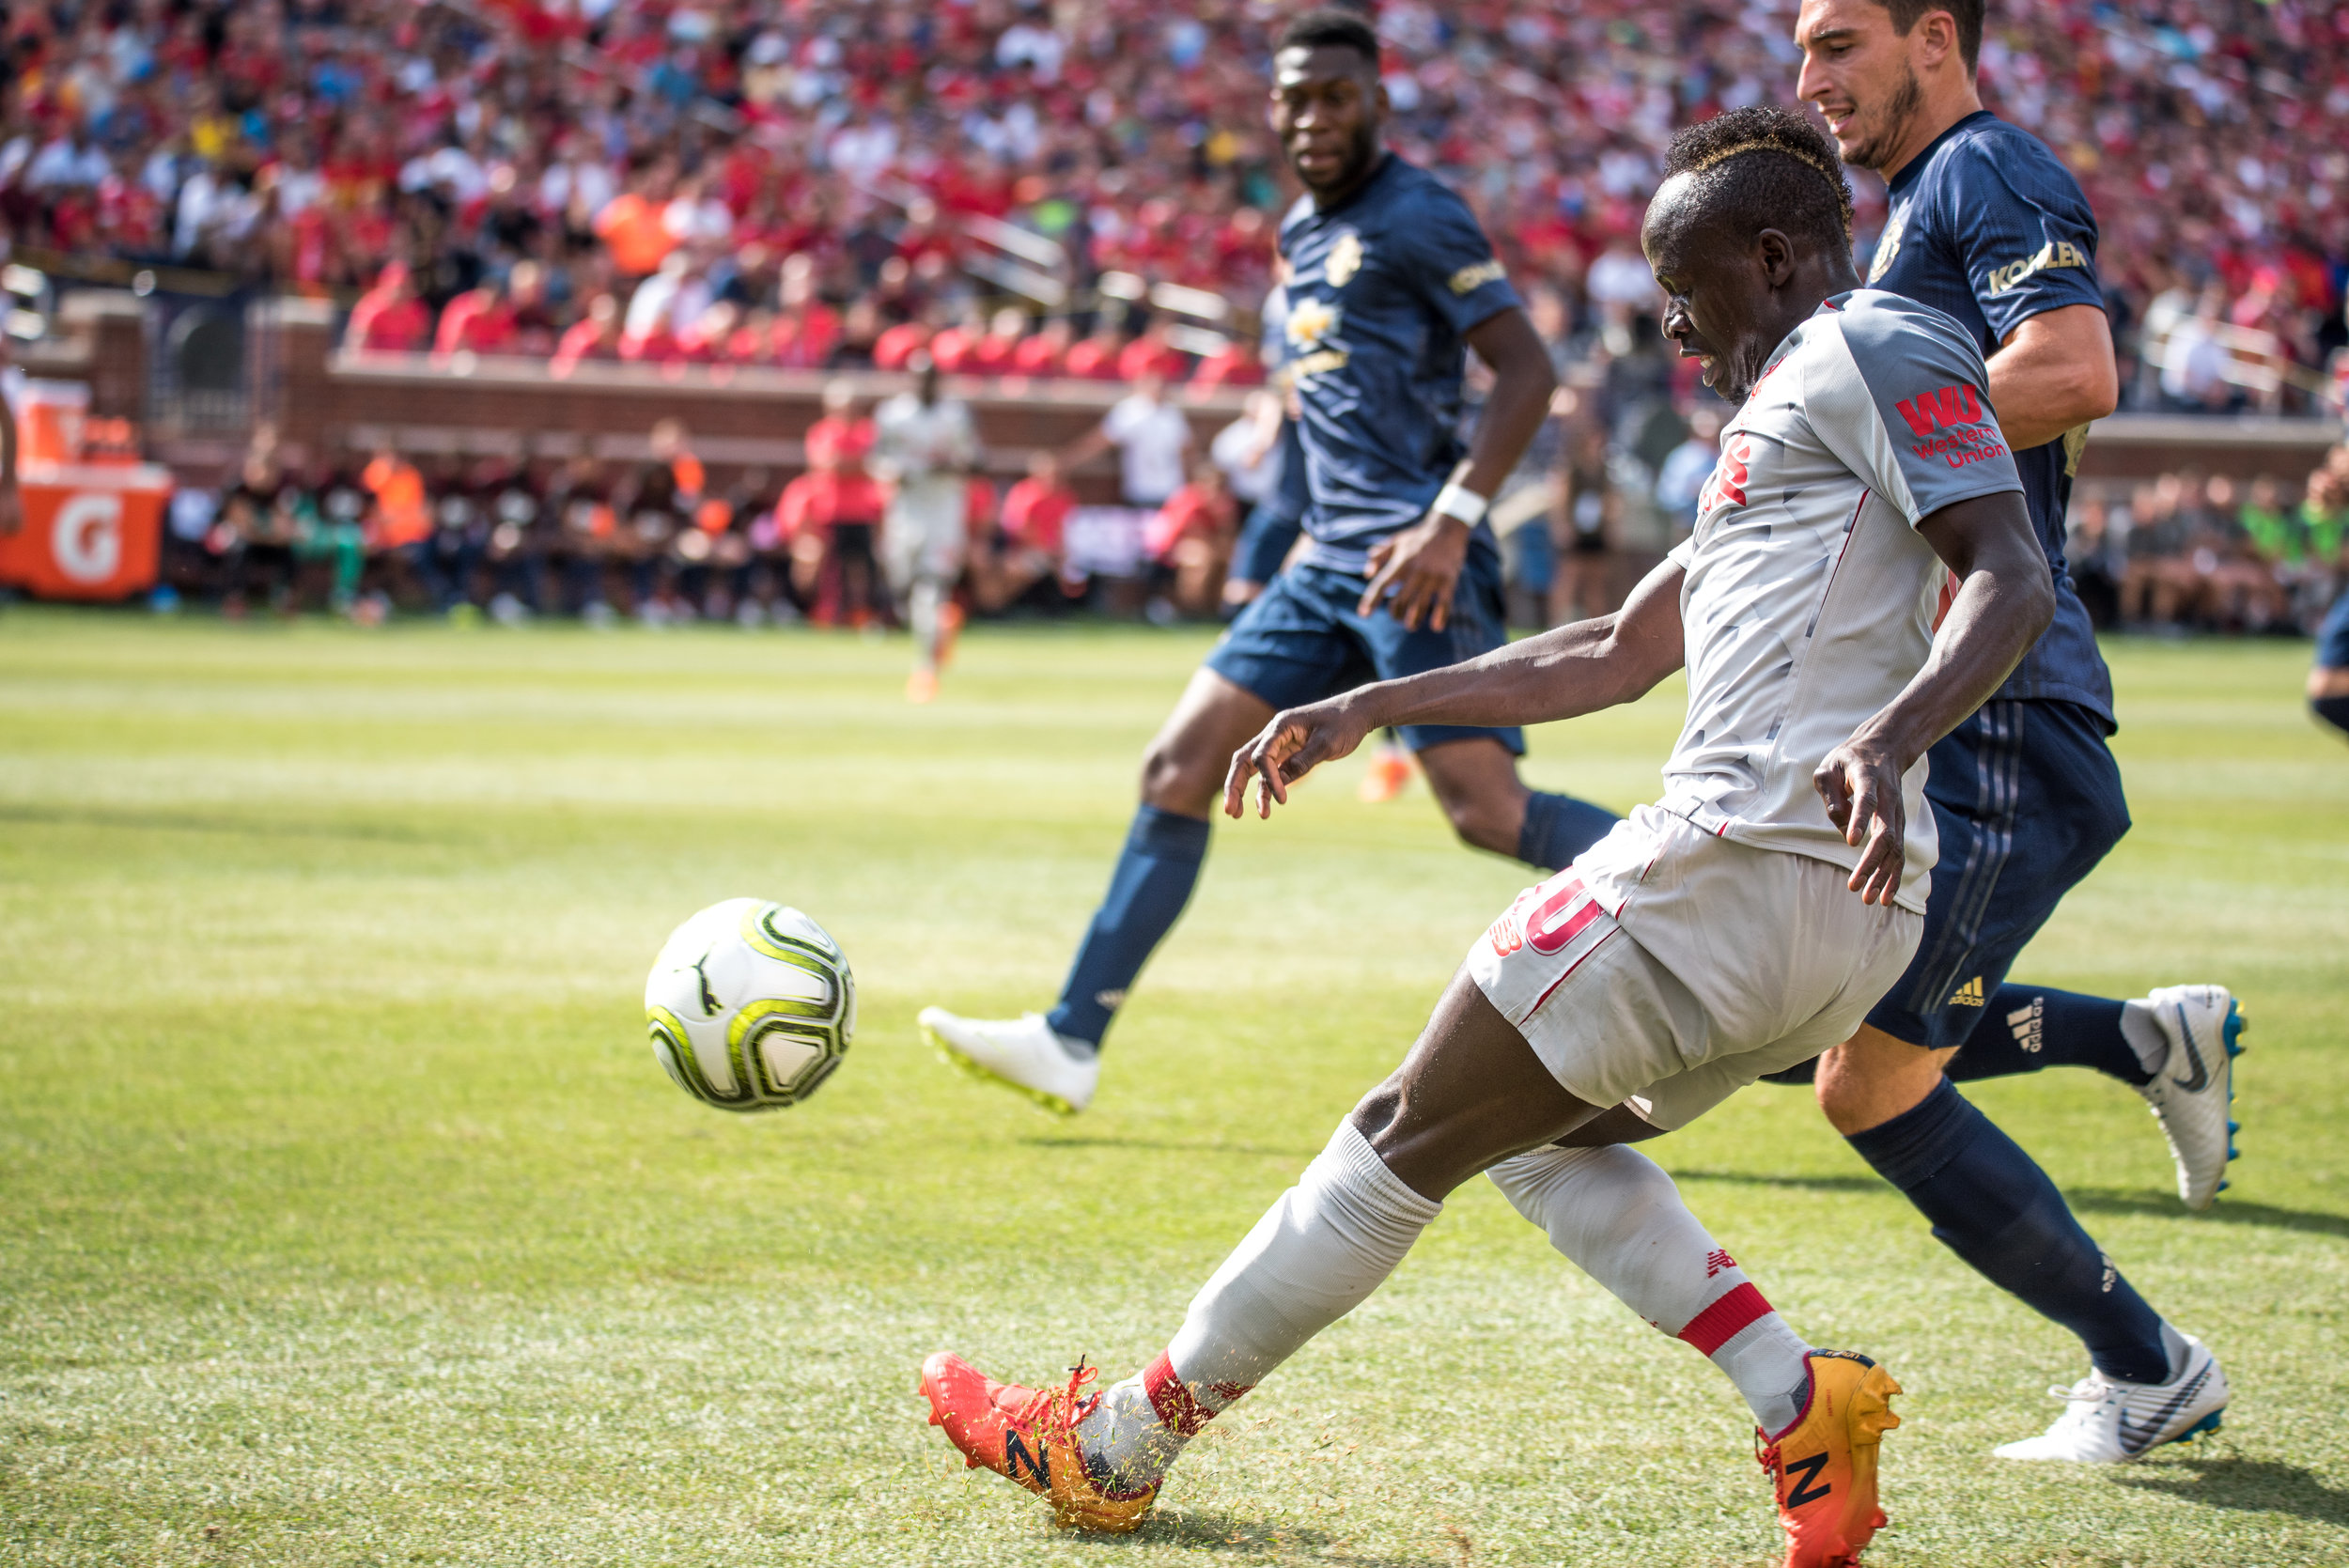 Liverpool's Sadio Mané (10) glides past Matteo Darmian  in the Manchester United Box - Photo: Elizabeth Wenner